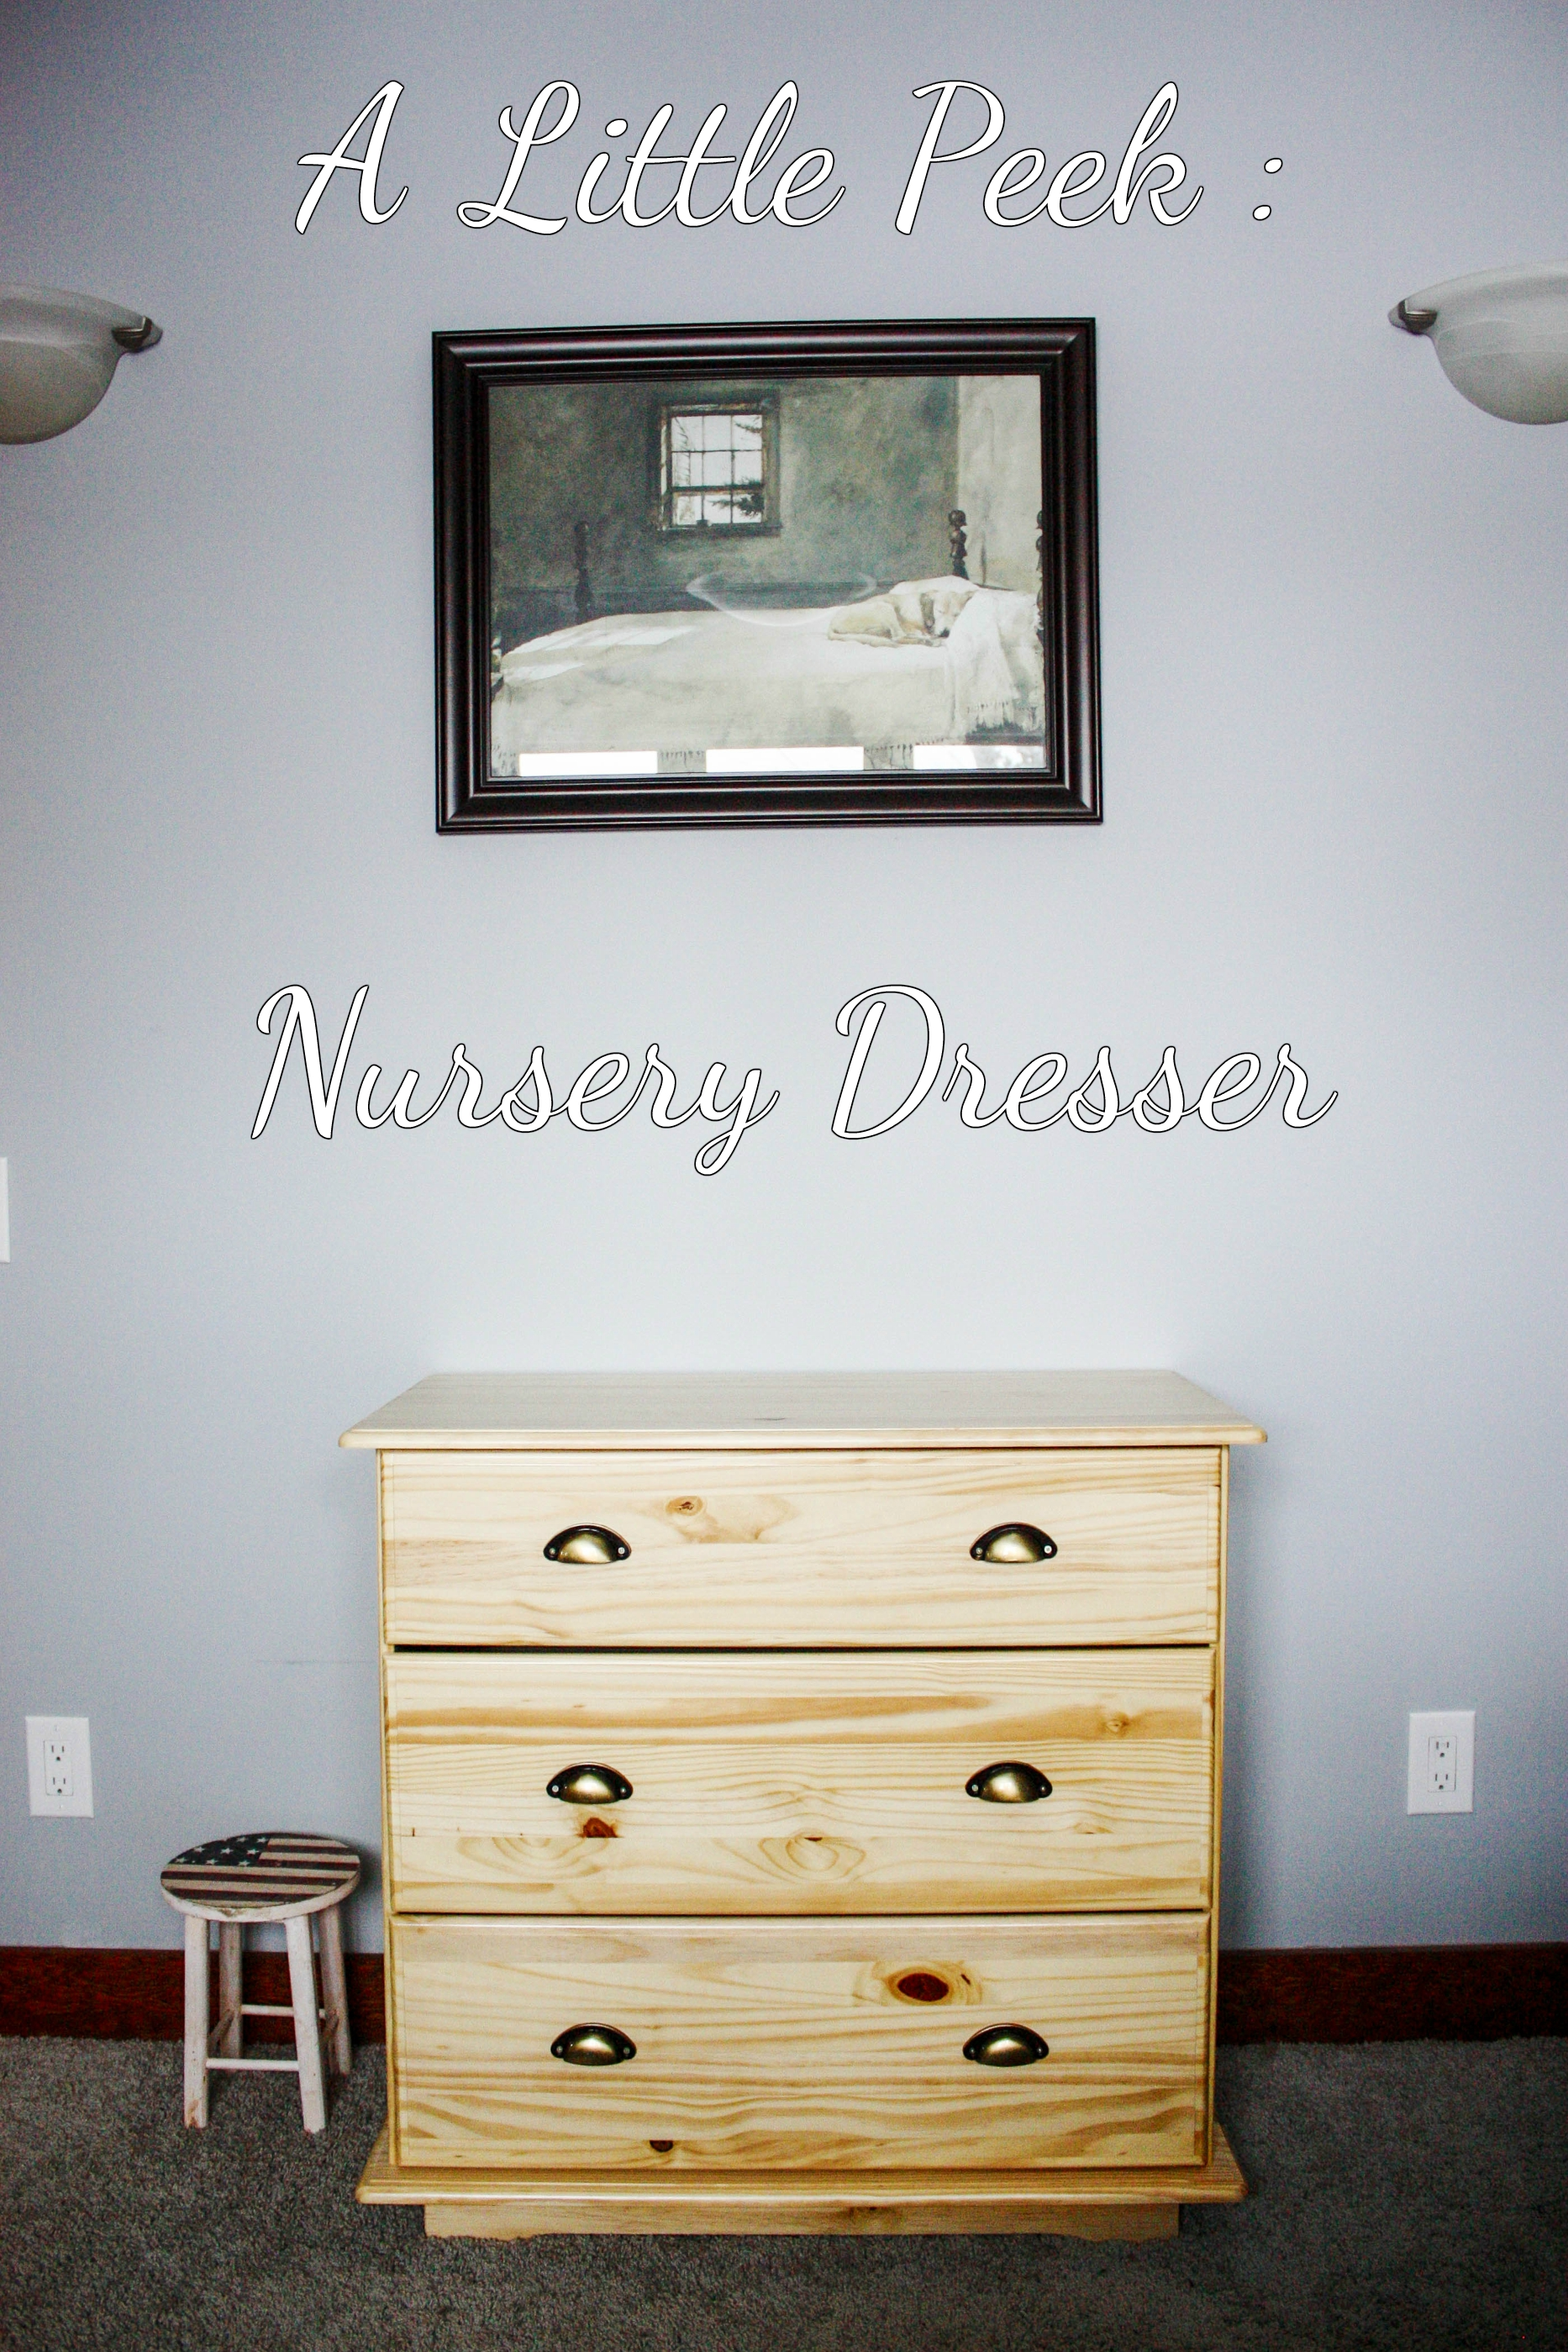 nursery dresser and clothes